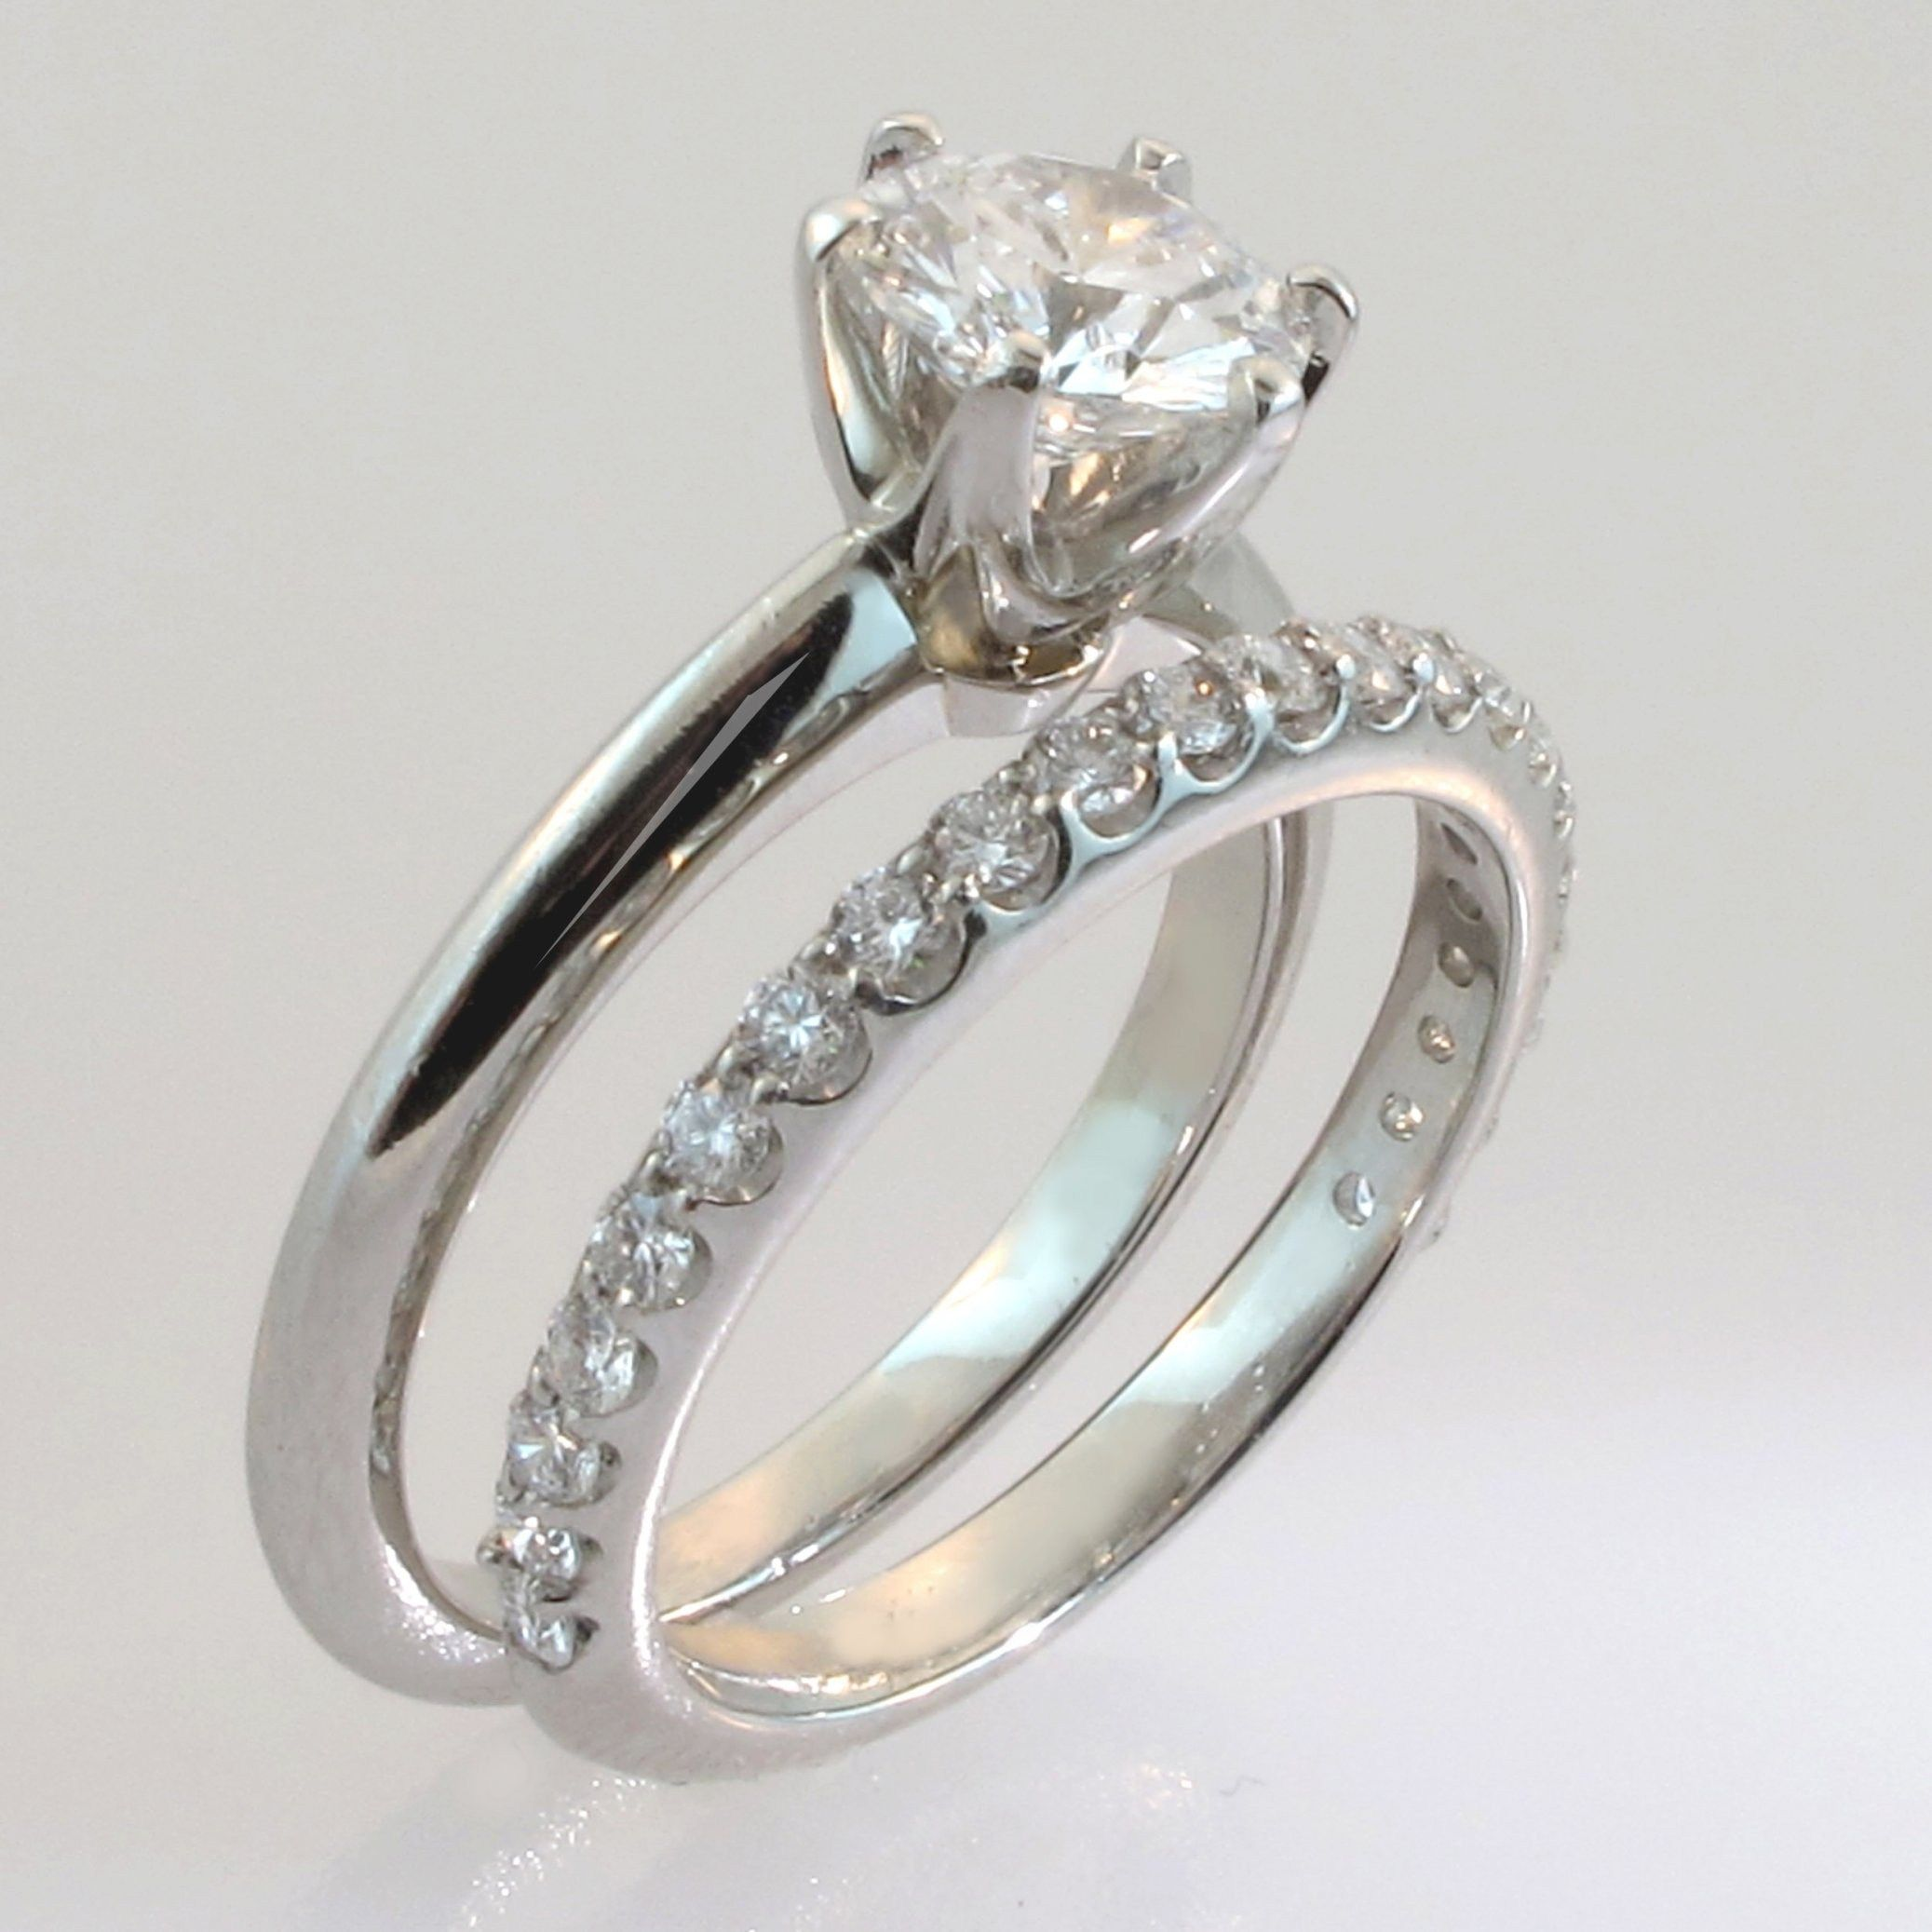 plymouth categories jewellery proposal for image rings sub her autumn wedding website